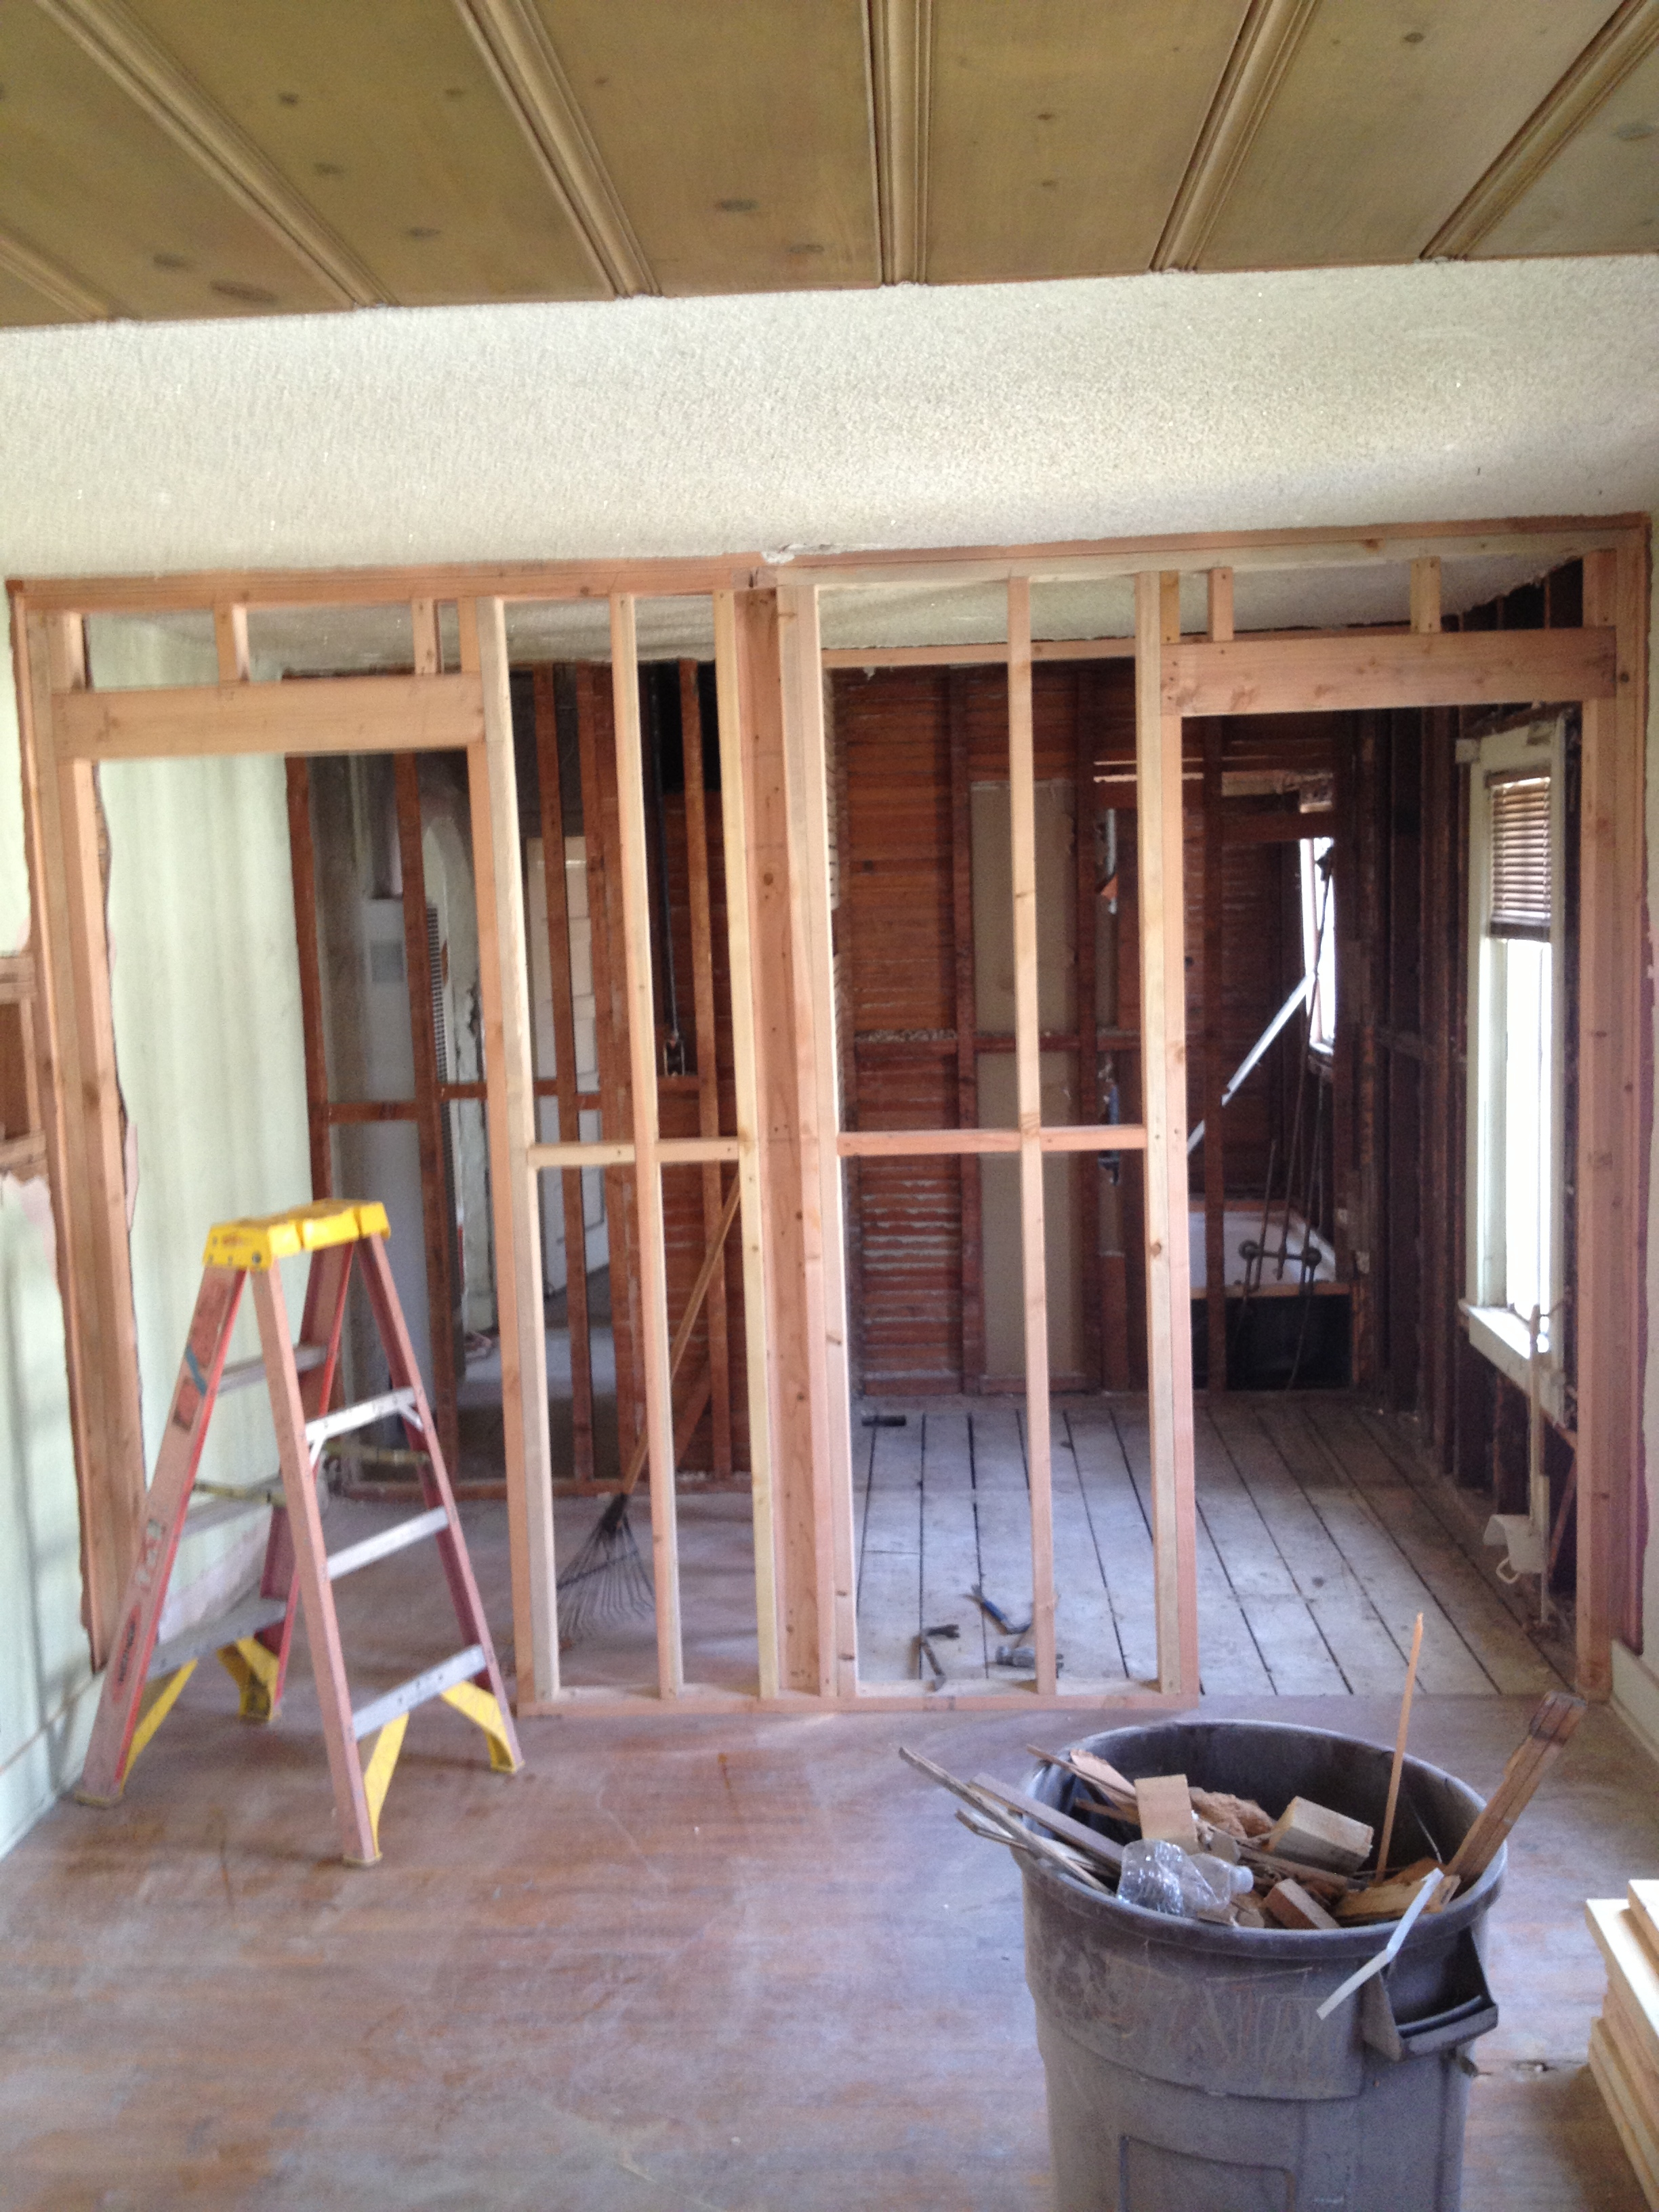 Charmant Adding A Bathroom, Indian Summer Investments, Remodel, Los Angeles